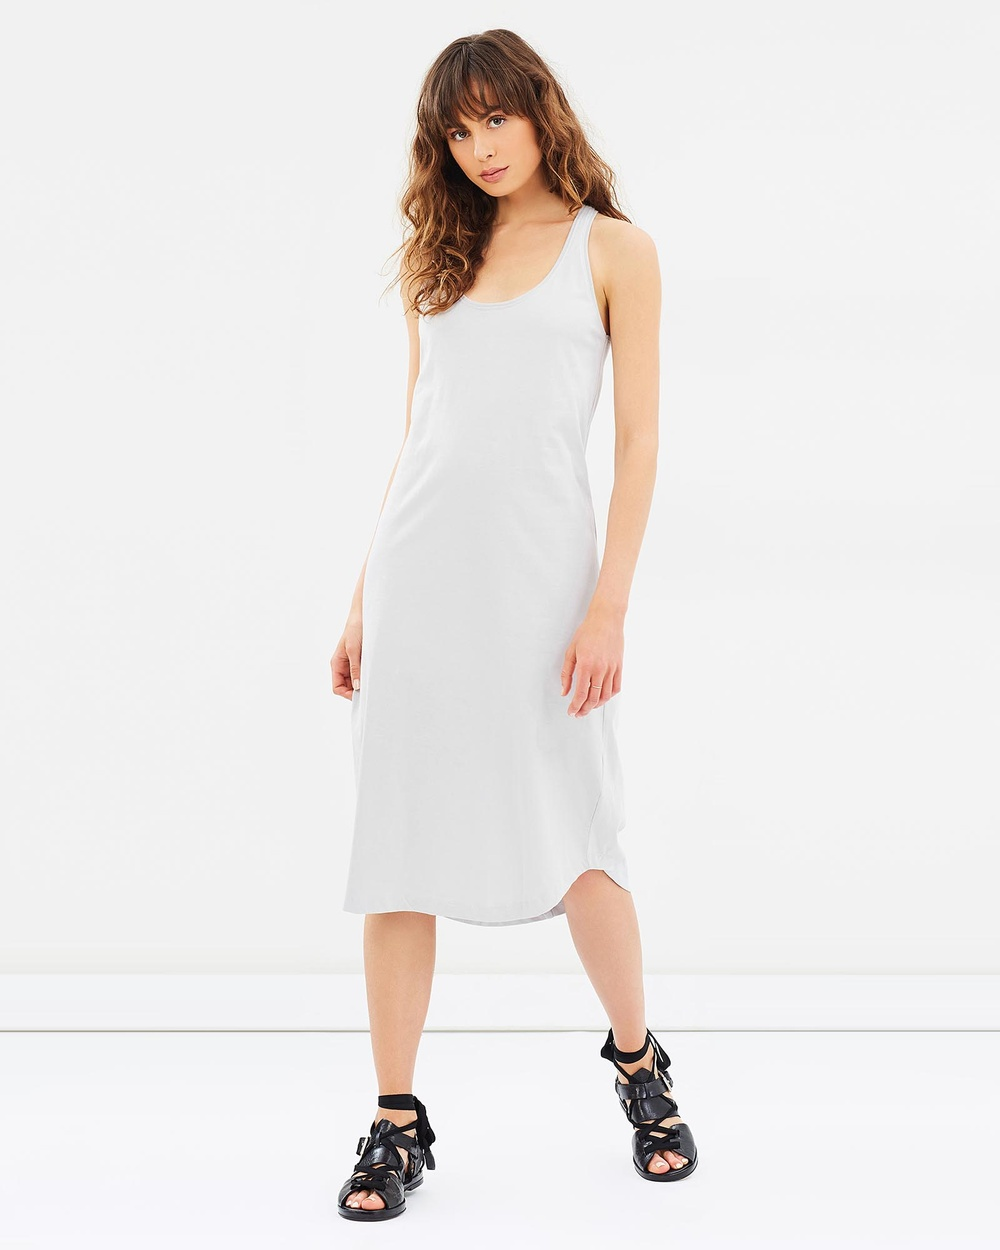 Cloth & Co. Organic Cotton Singlet Dress Dresses Grey Organic Cotton Singlet Dress